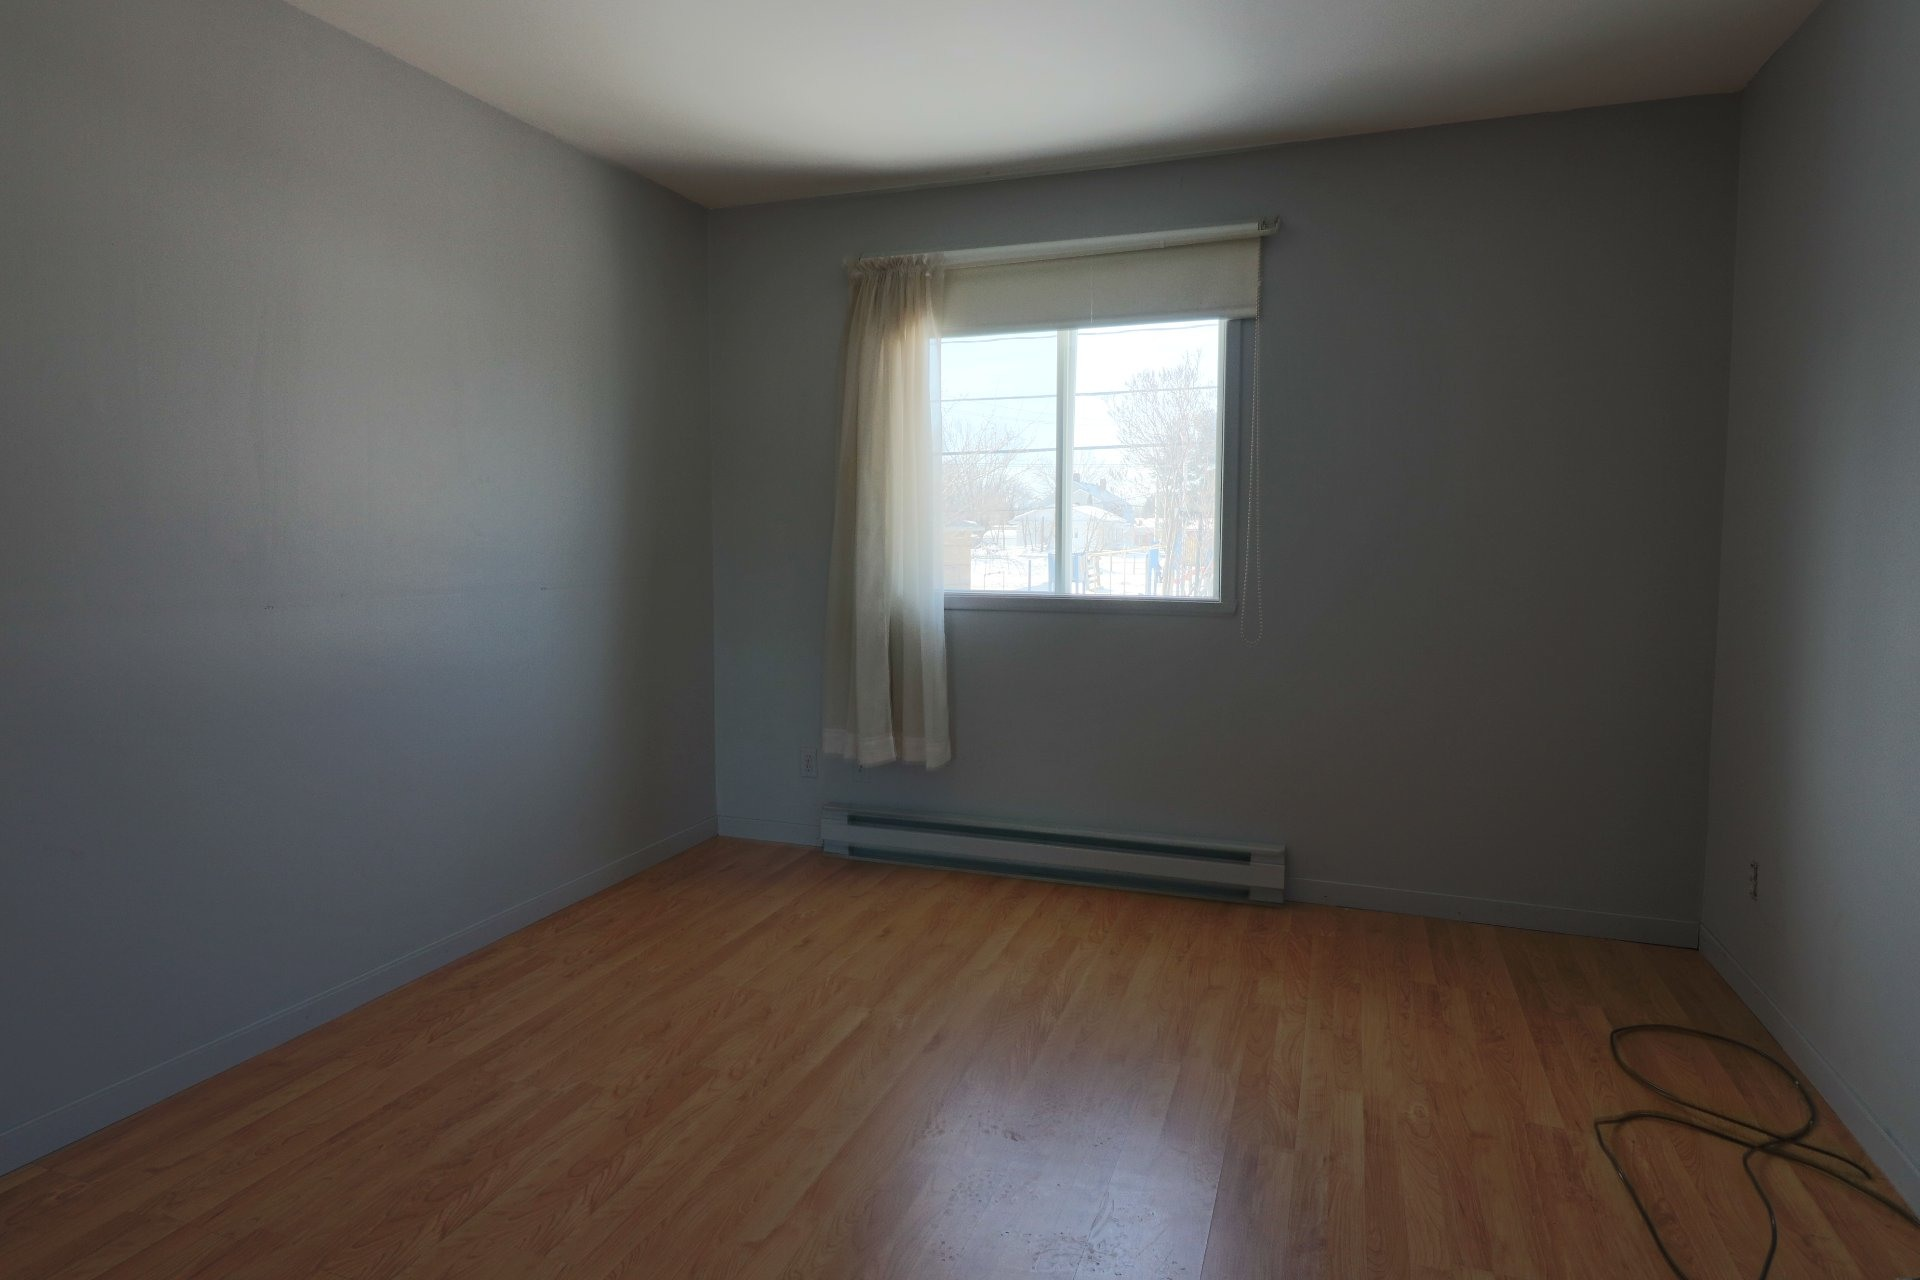 House For sale Trois-Rivières - 11 rooms